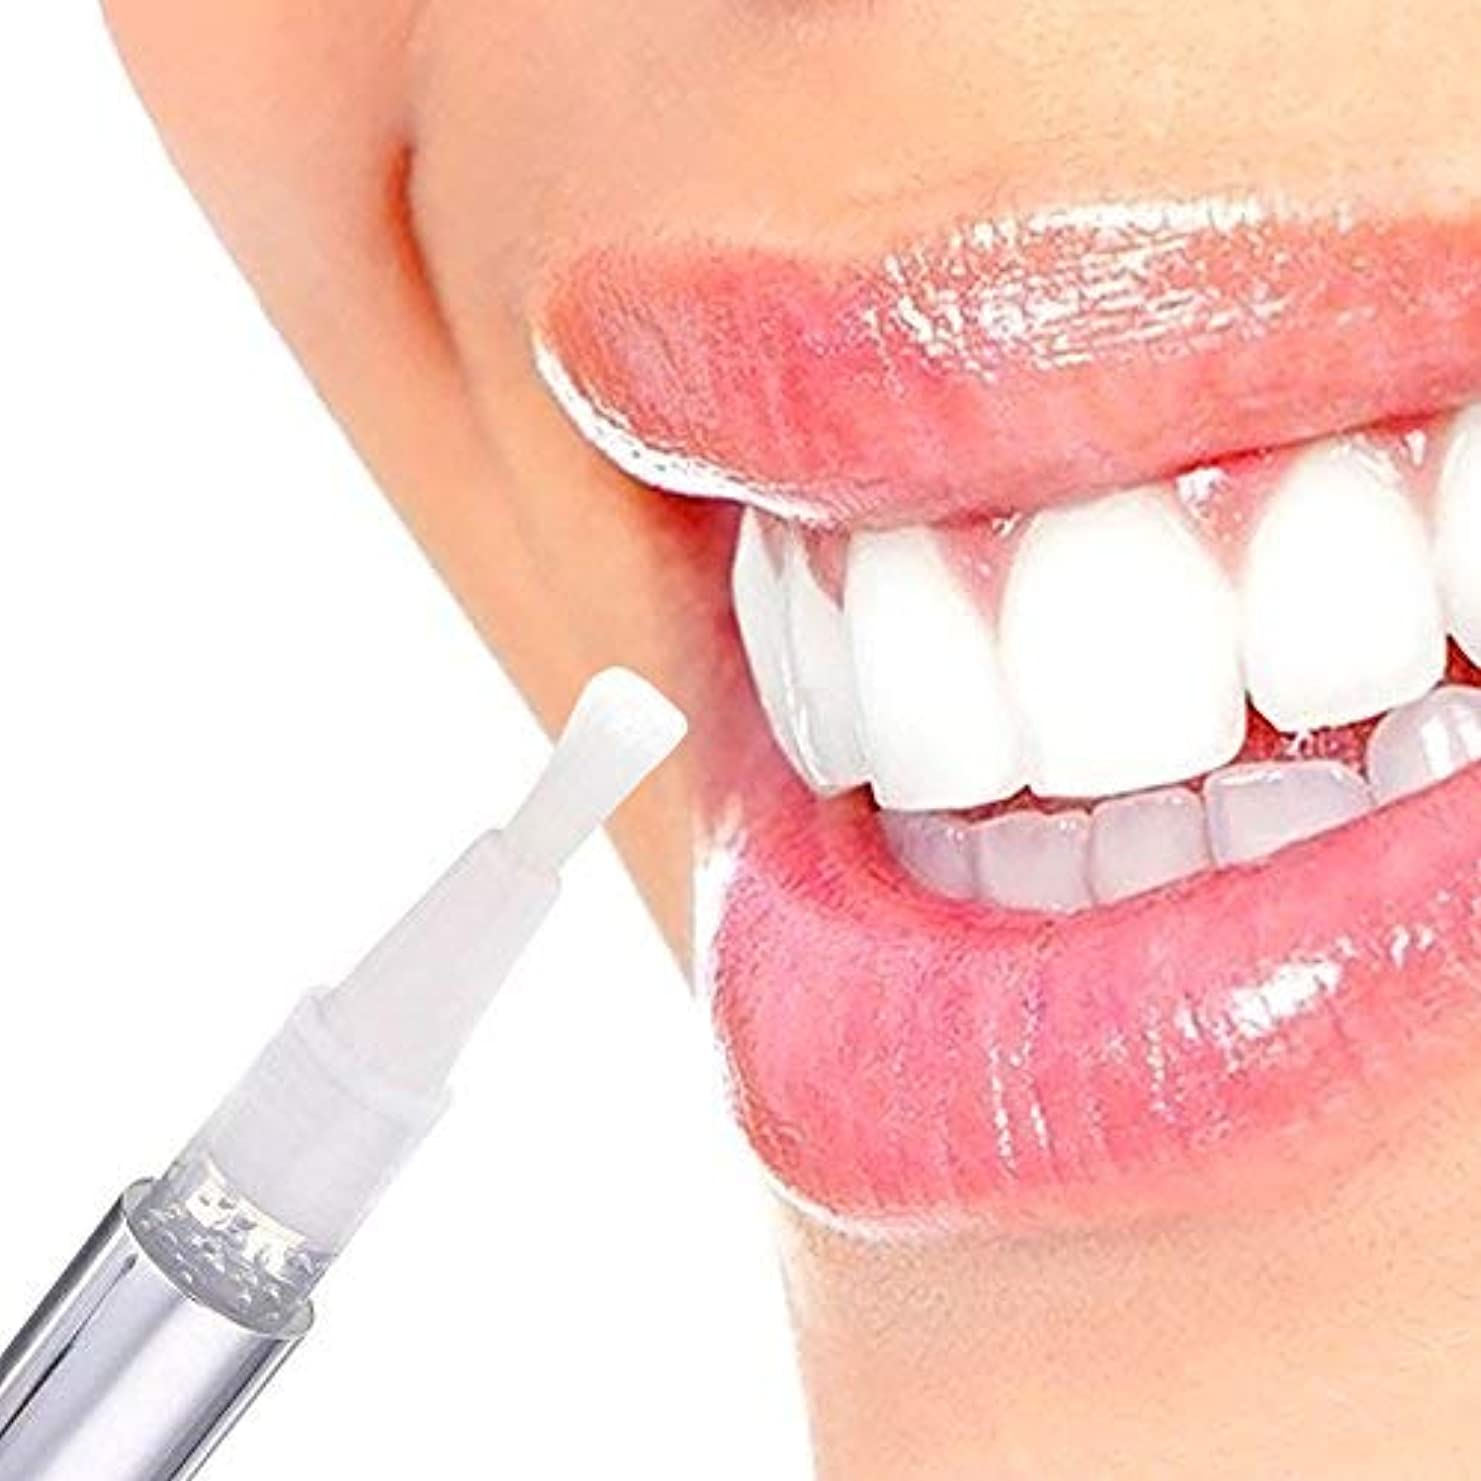 段落類似性みすぼらしいNat 1PCS Hot Creative Effective Teeth Whitening Pen Tooth Gel Whitener Bleach Stain Eraser Sexy Celebrity Smile Teeth Care.